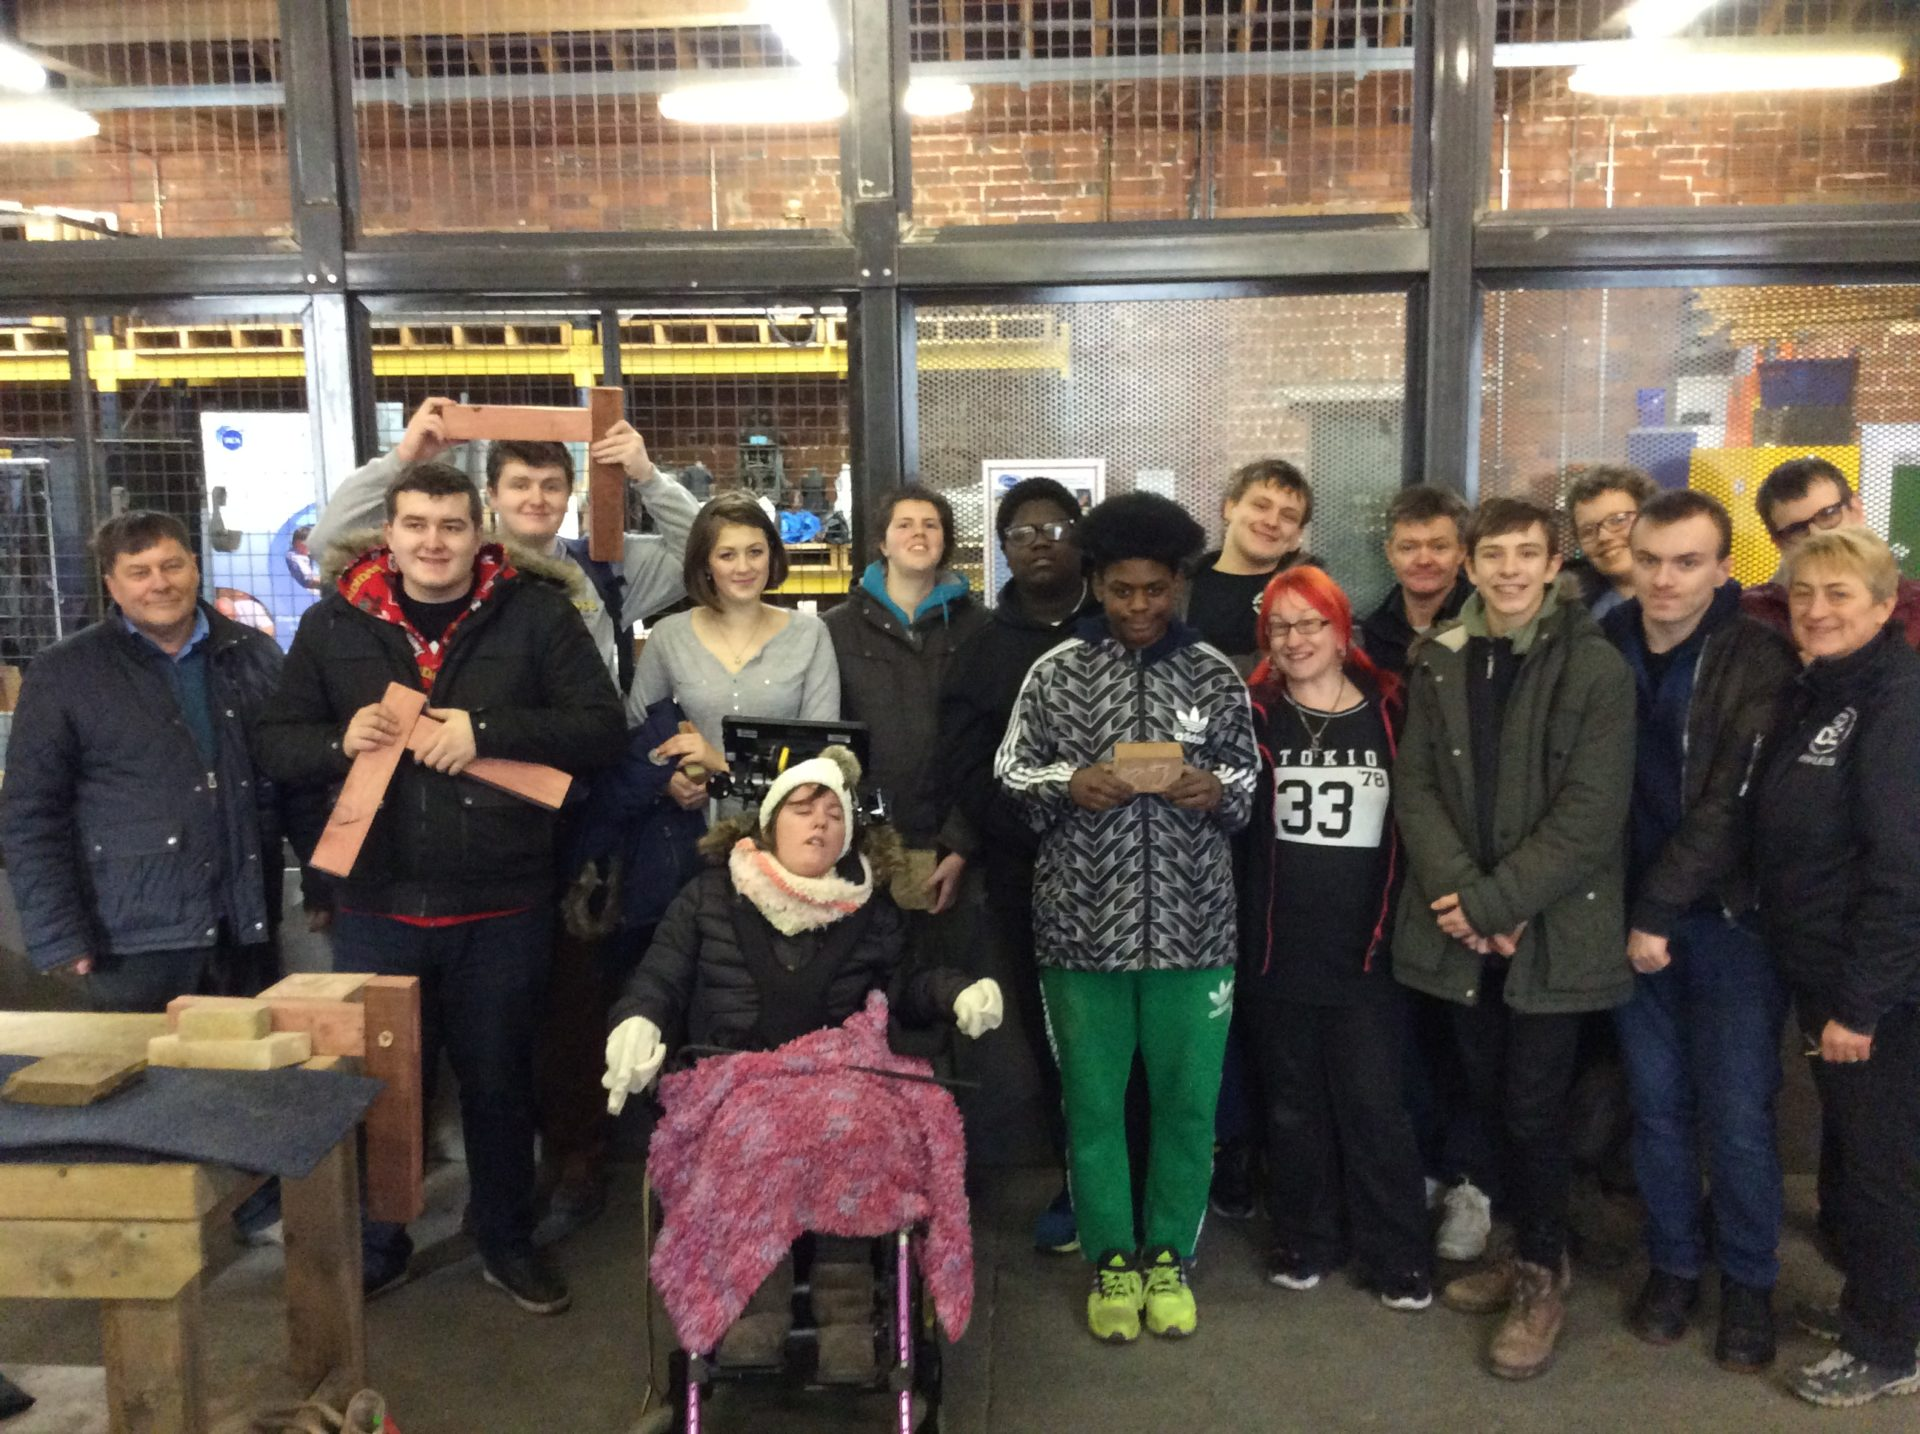 Heritage skills taster session at the National Coal Mining Museum